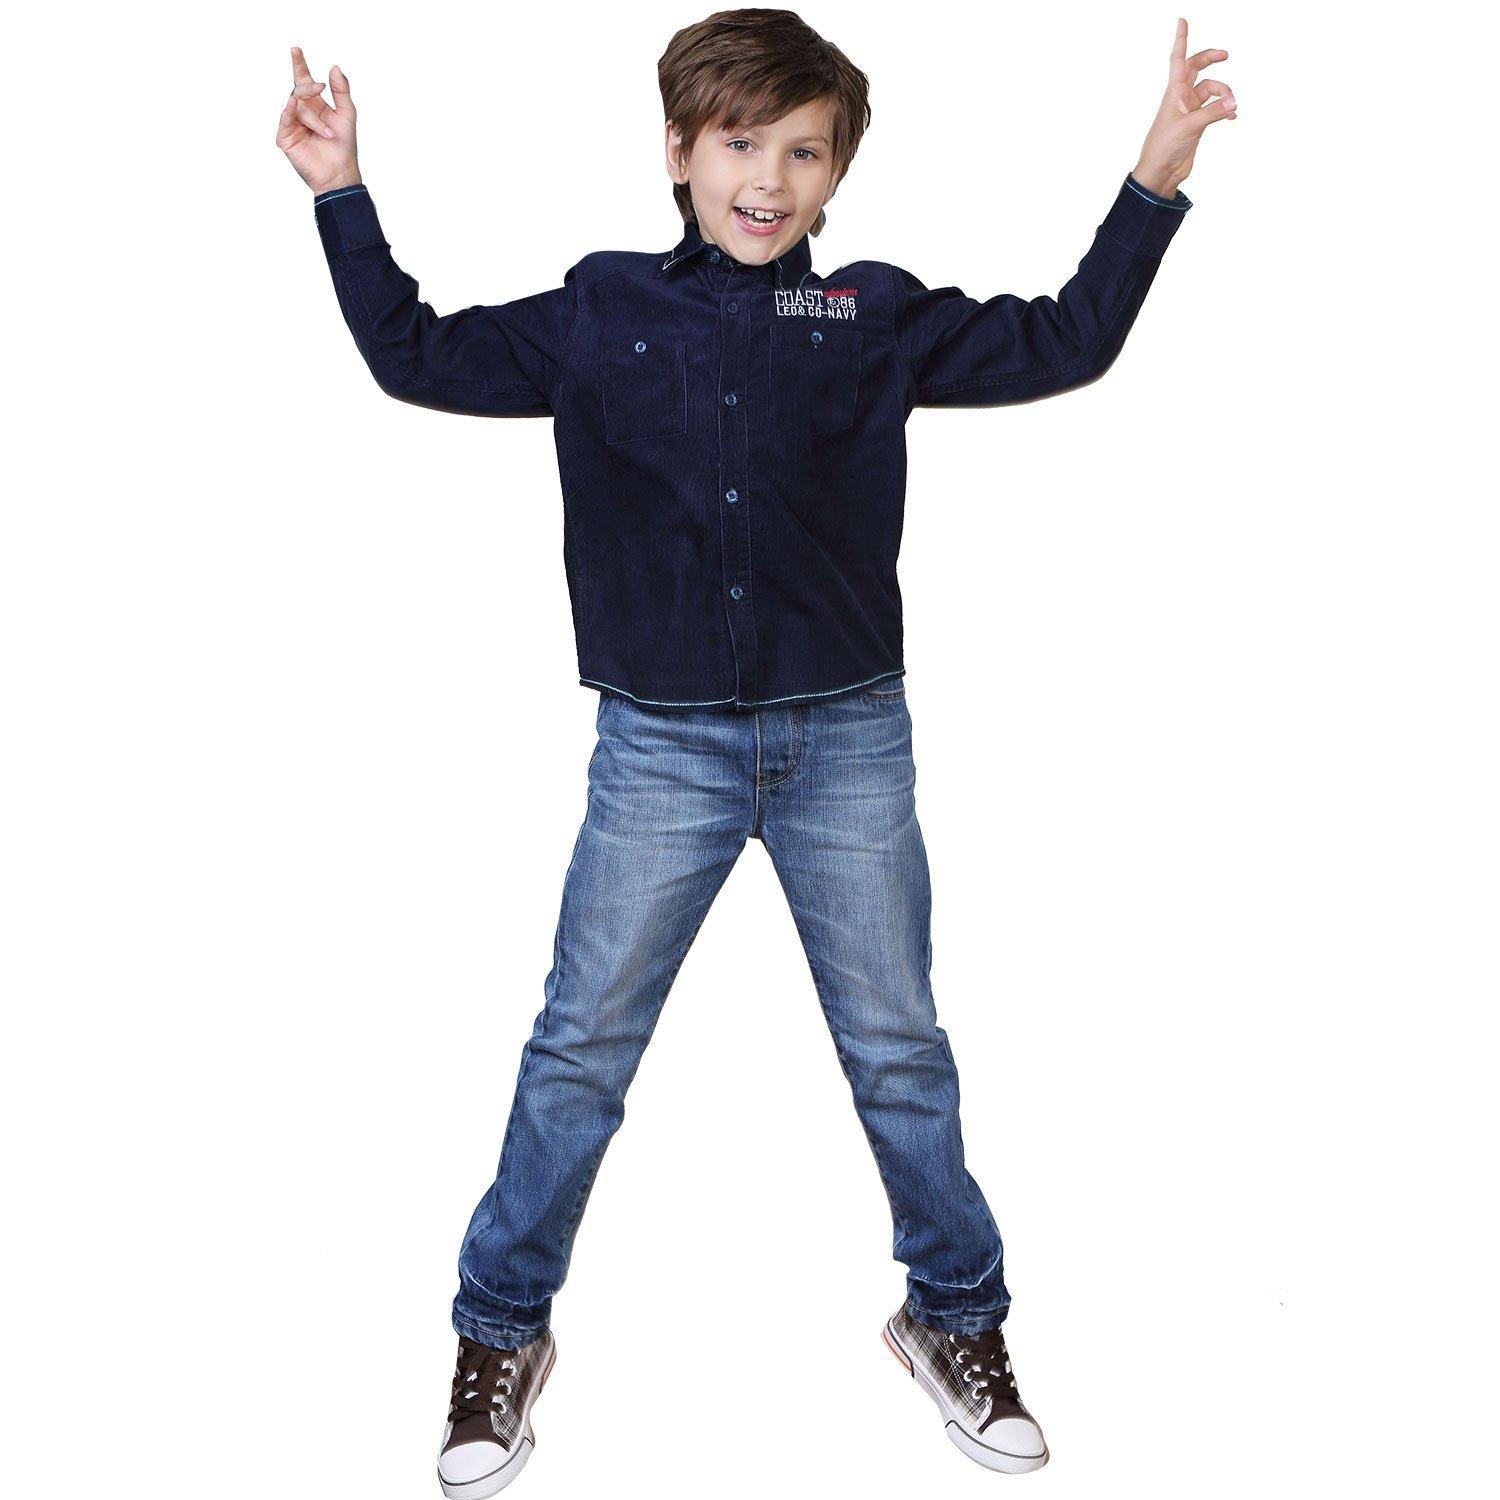 8dab041d8a Leo&Lily Boys Jeans Jeans: Amazon.ca: Clothing & Accessories